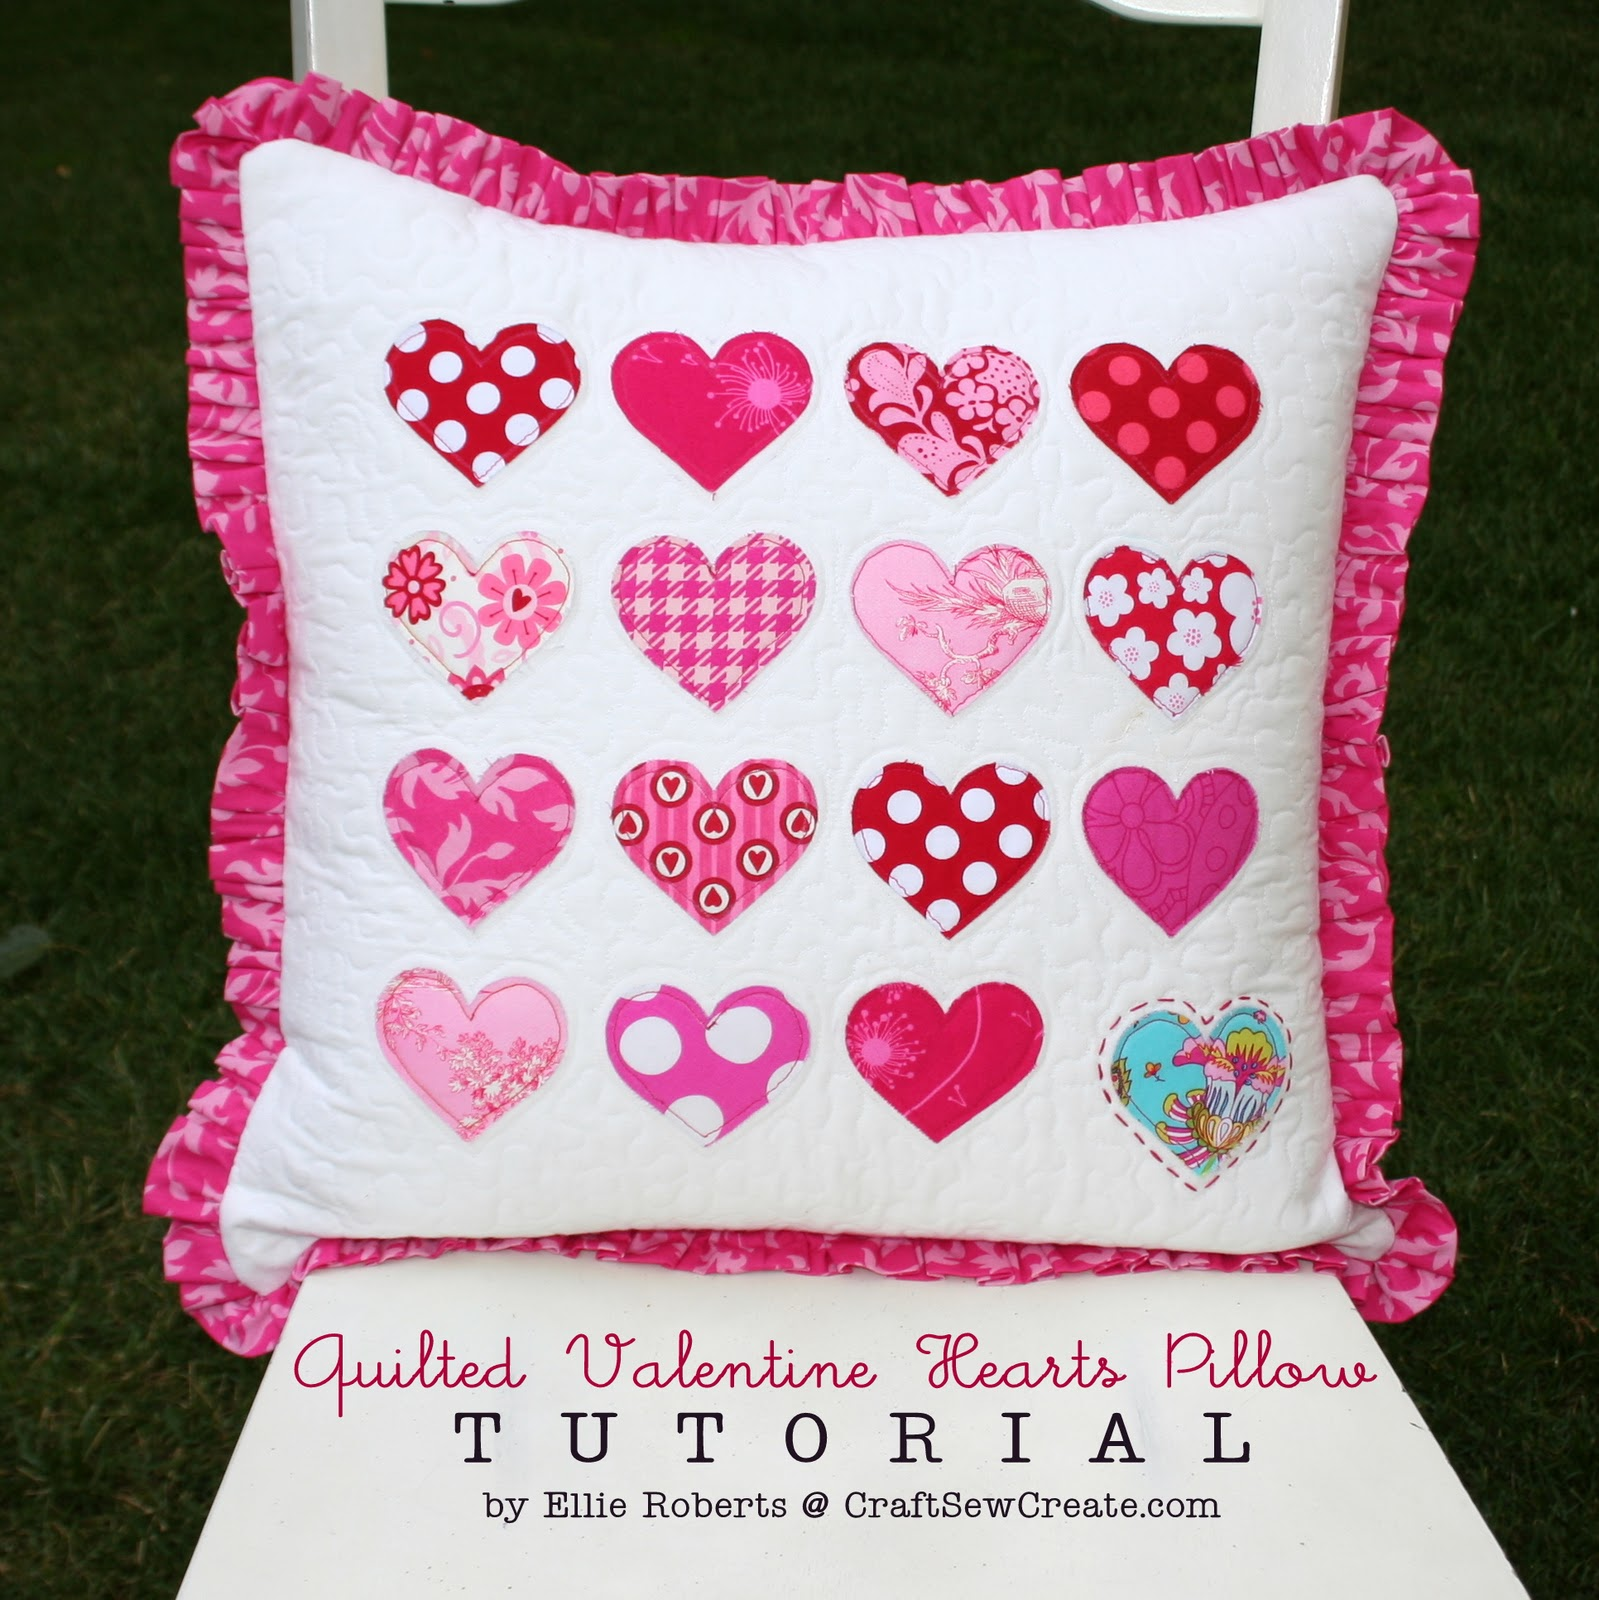 Cute Pillow Crafts : Craft Sew Create: Quilted Valentine Hearts Pillow Tutorial